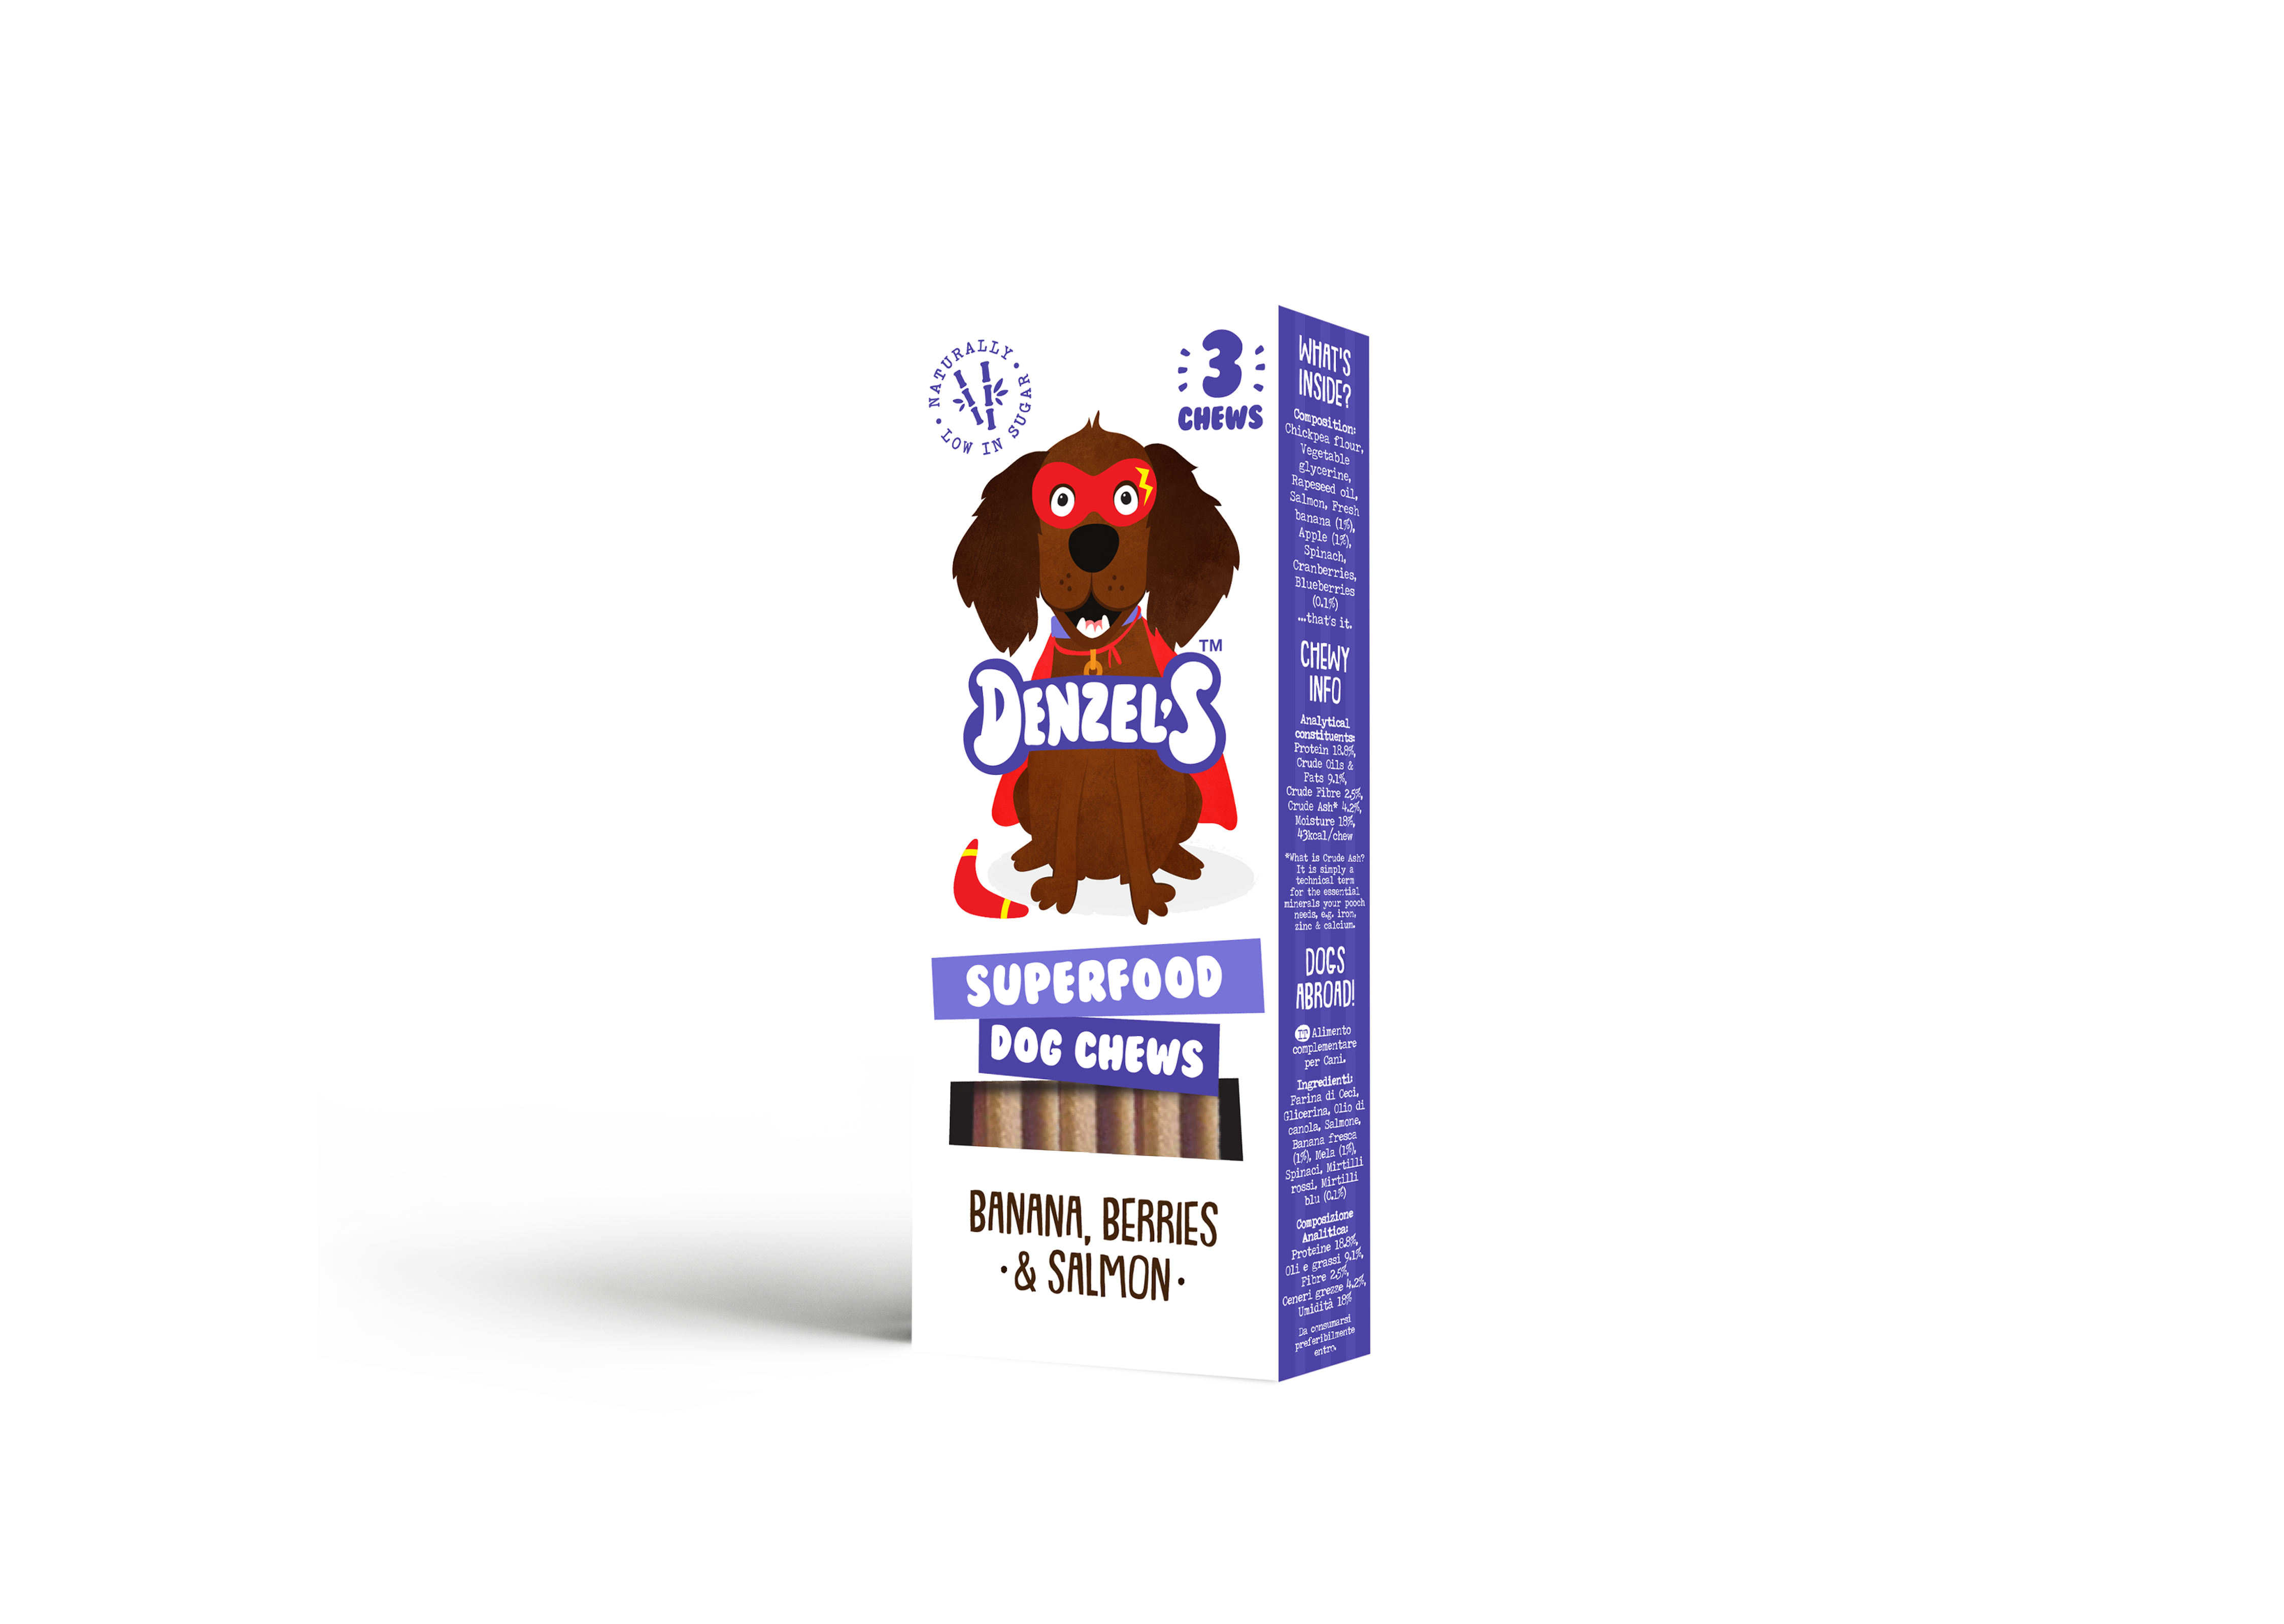 Denzels Superfood Chews